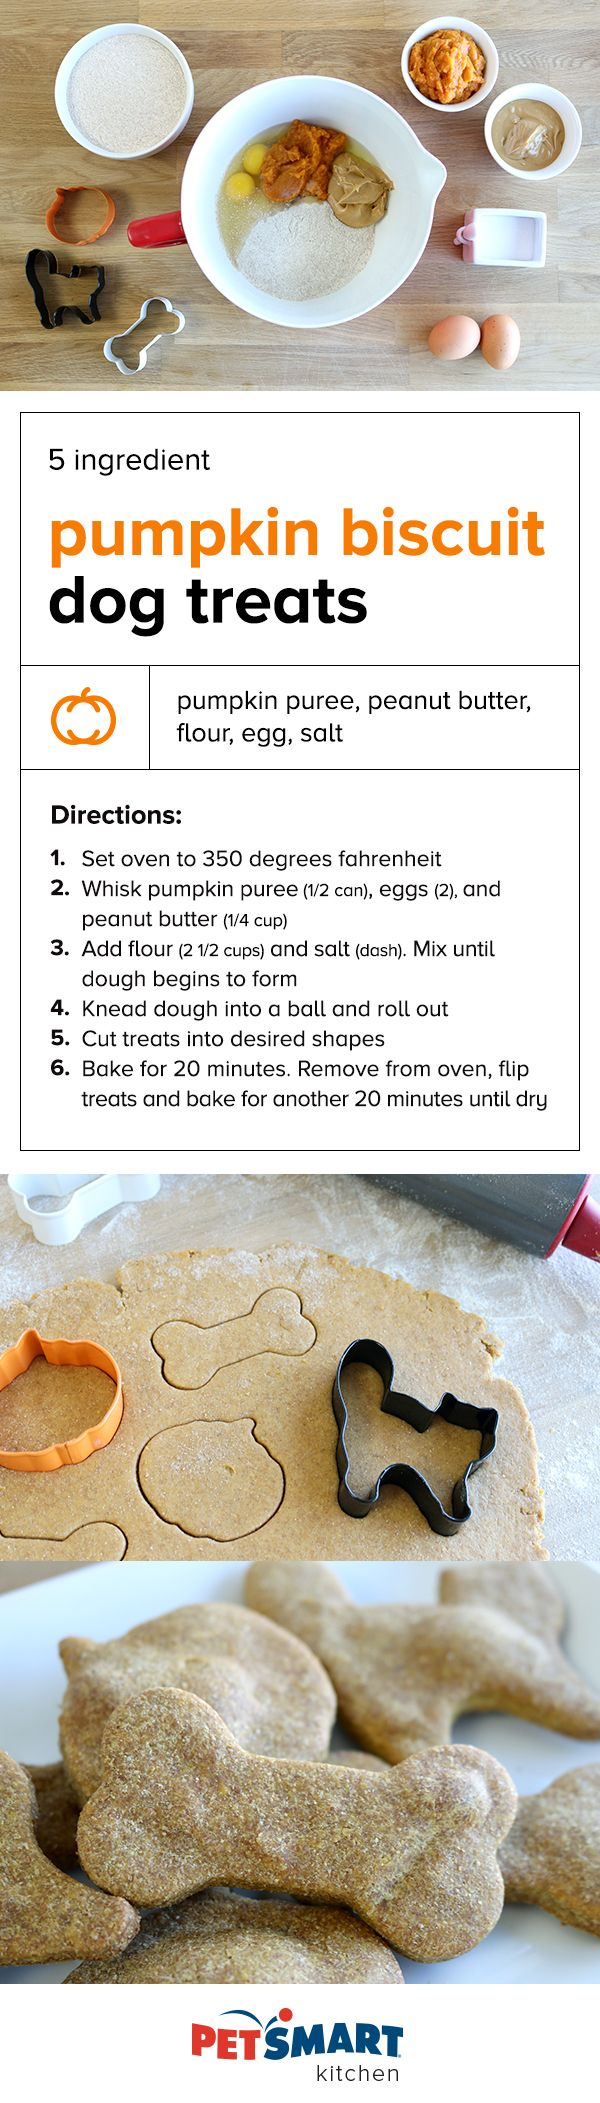 5-Ingredient Pumpkin Biscuit Dog Treats. Whip up these easy treats for your pumpkin loving pups! Recipe inspired from Will Cook from Friends blog. Note on ingredients, any peanut butter used must be free of xylitol, an artificial sweetener which is highly toxic to pets. Before preparing, make sure your dog does not have allergies to any of the ingredients listed above and are fat-tolerant.